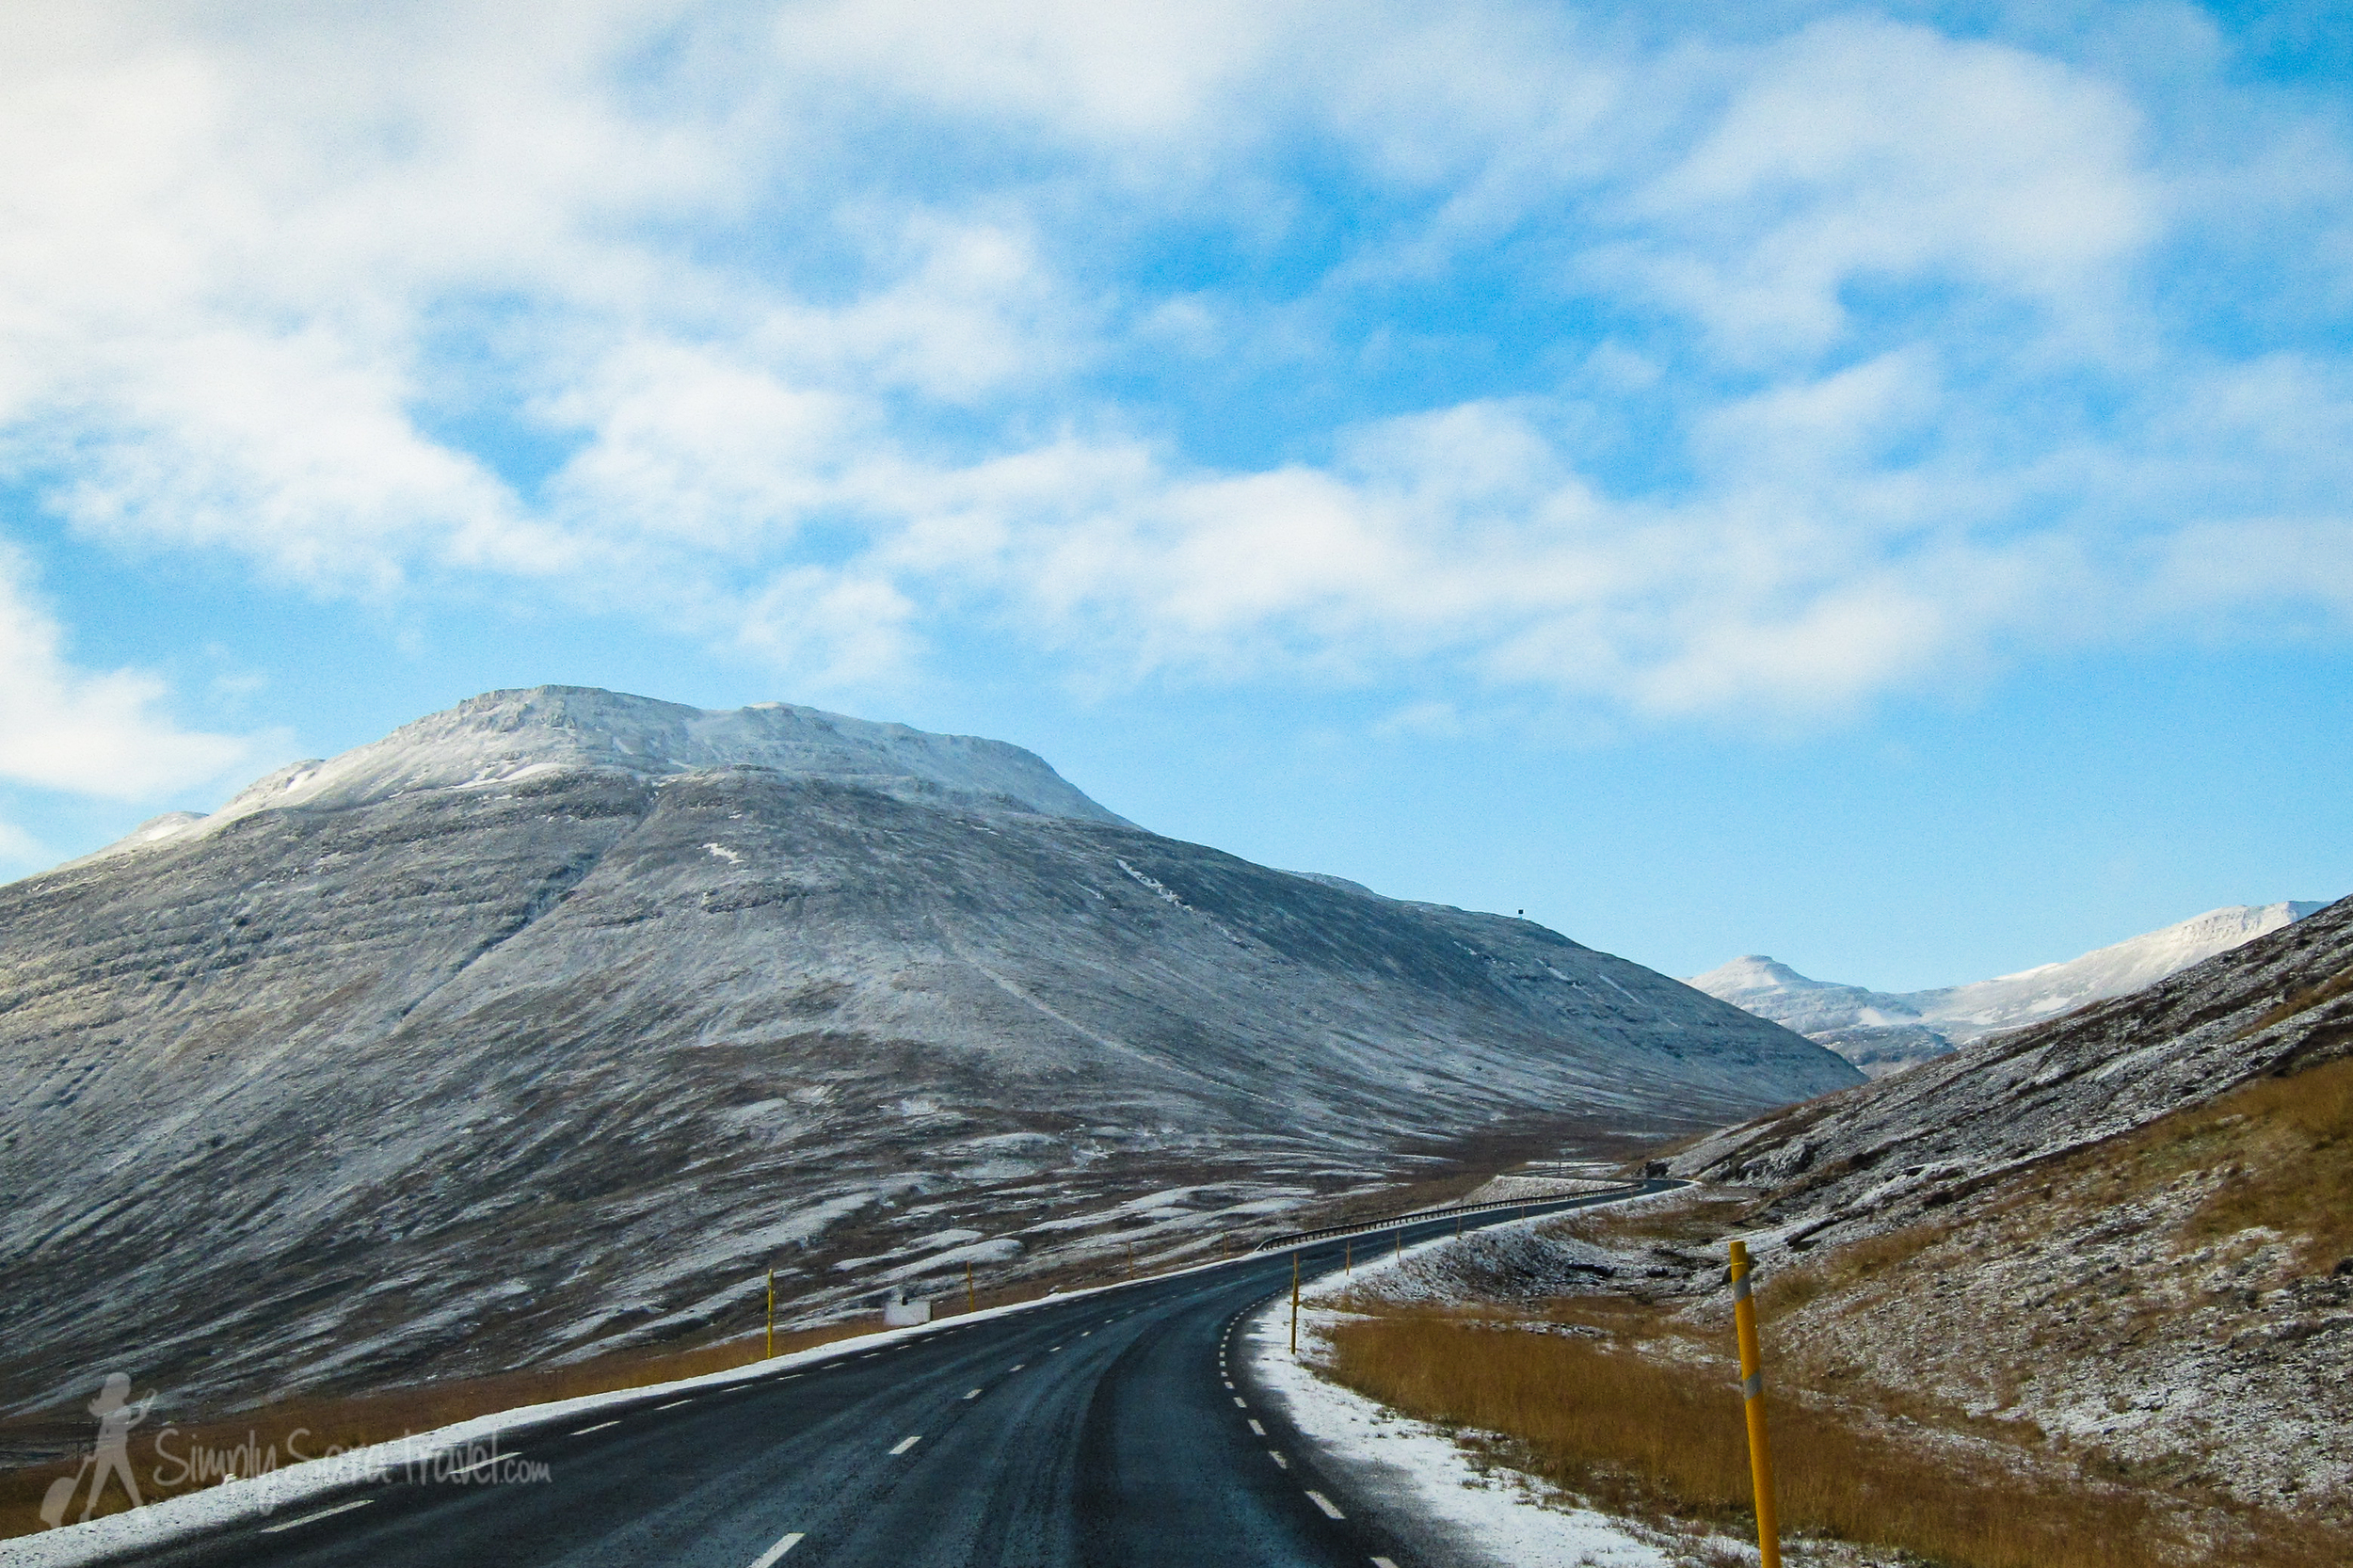 Snowy mountains along Iceland's ring road